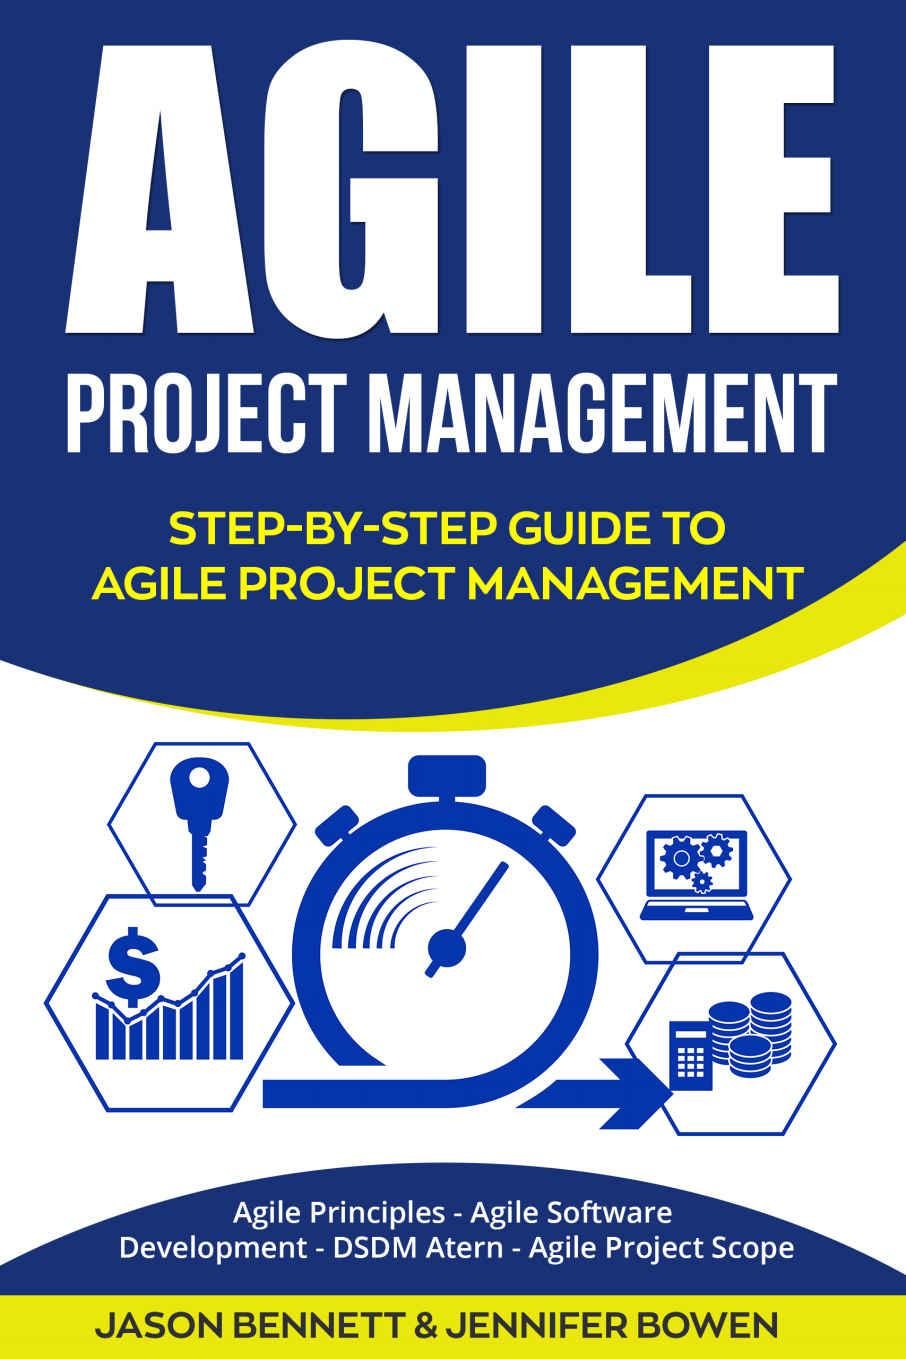 Agile Project Management: Step-by-Step Guide to Agile Project Management